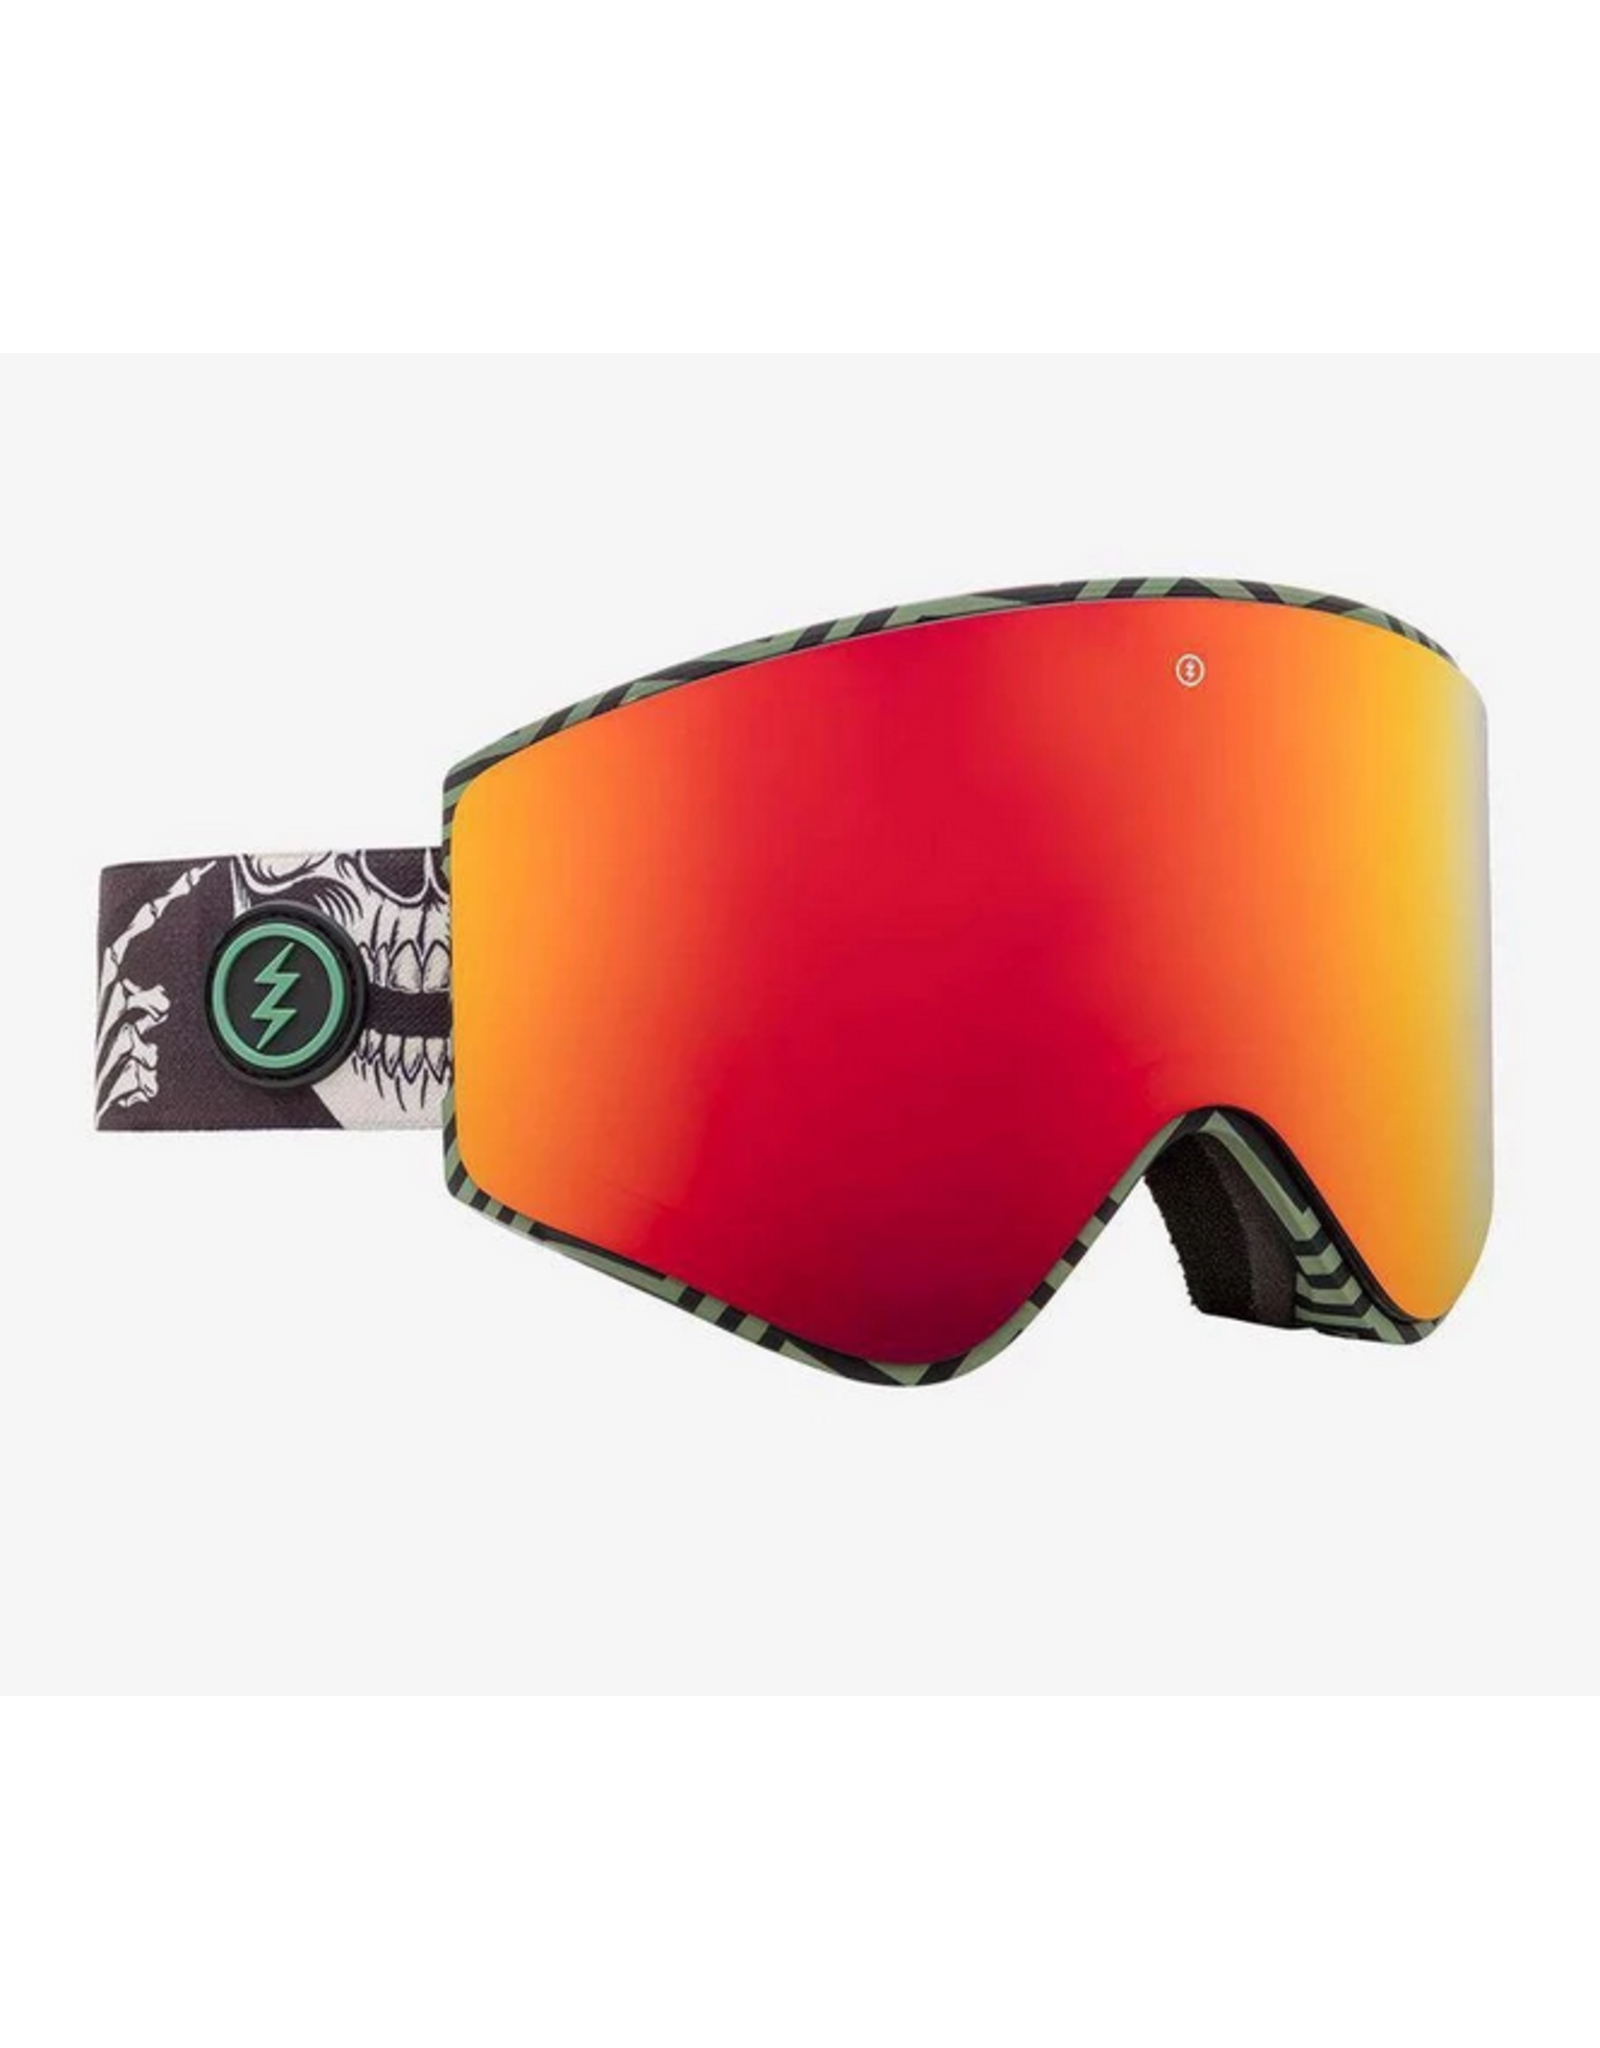 ELECTRIC ELECTRIC GOGGLE EGX TORGIER GREGG BROSE/RED CHROME